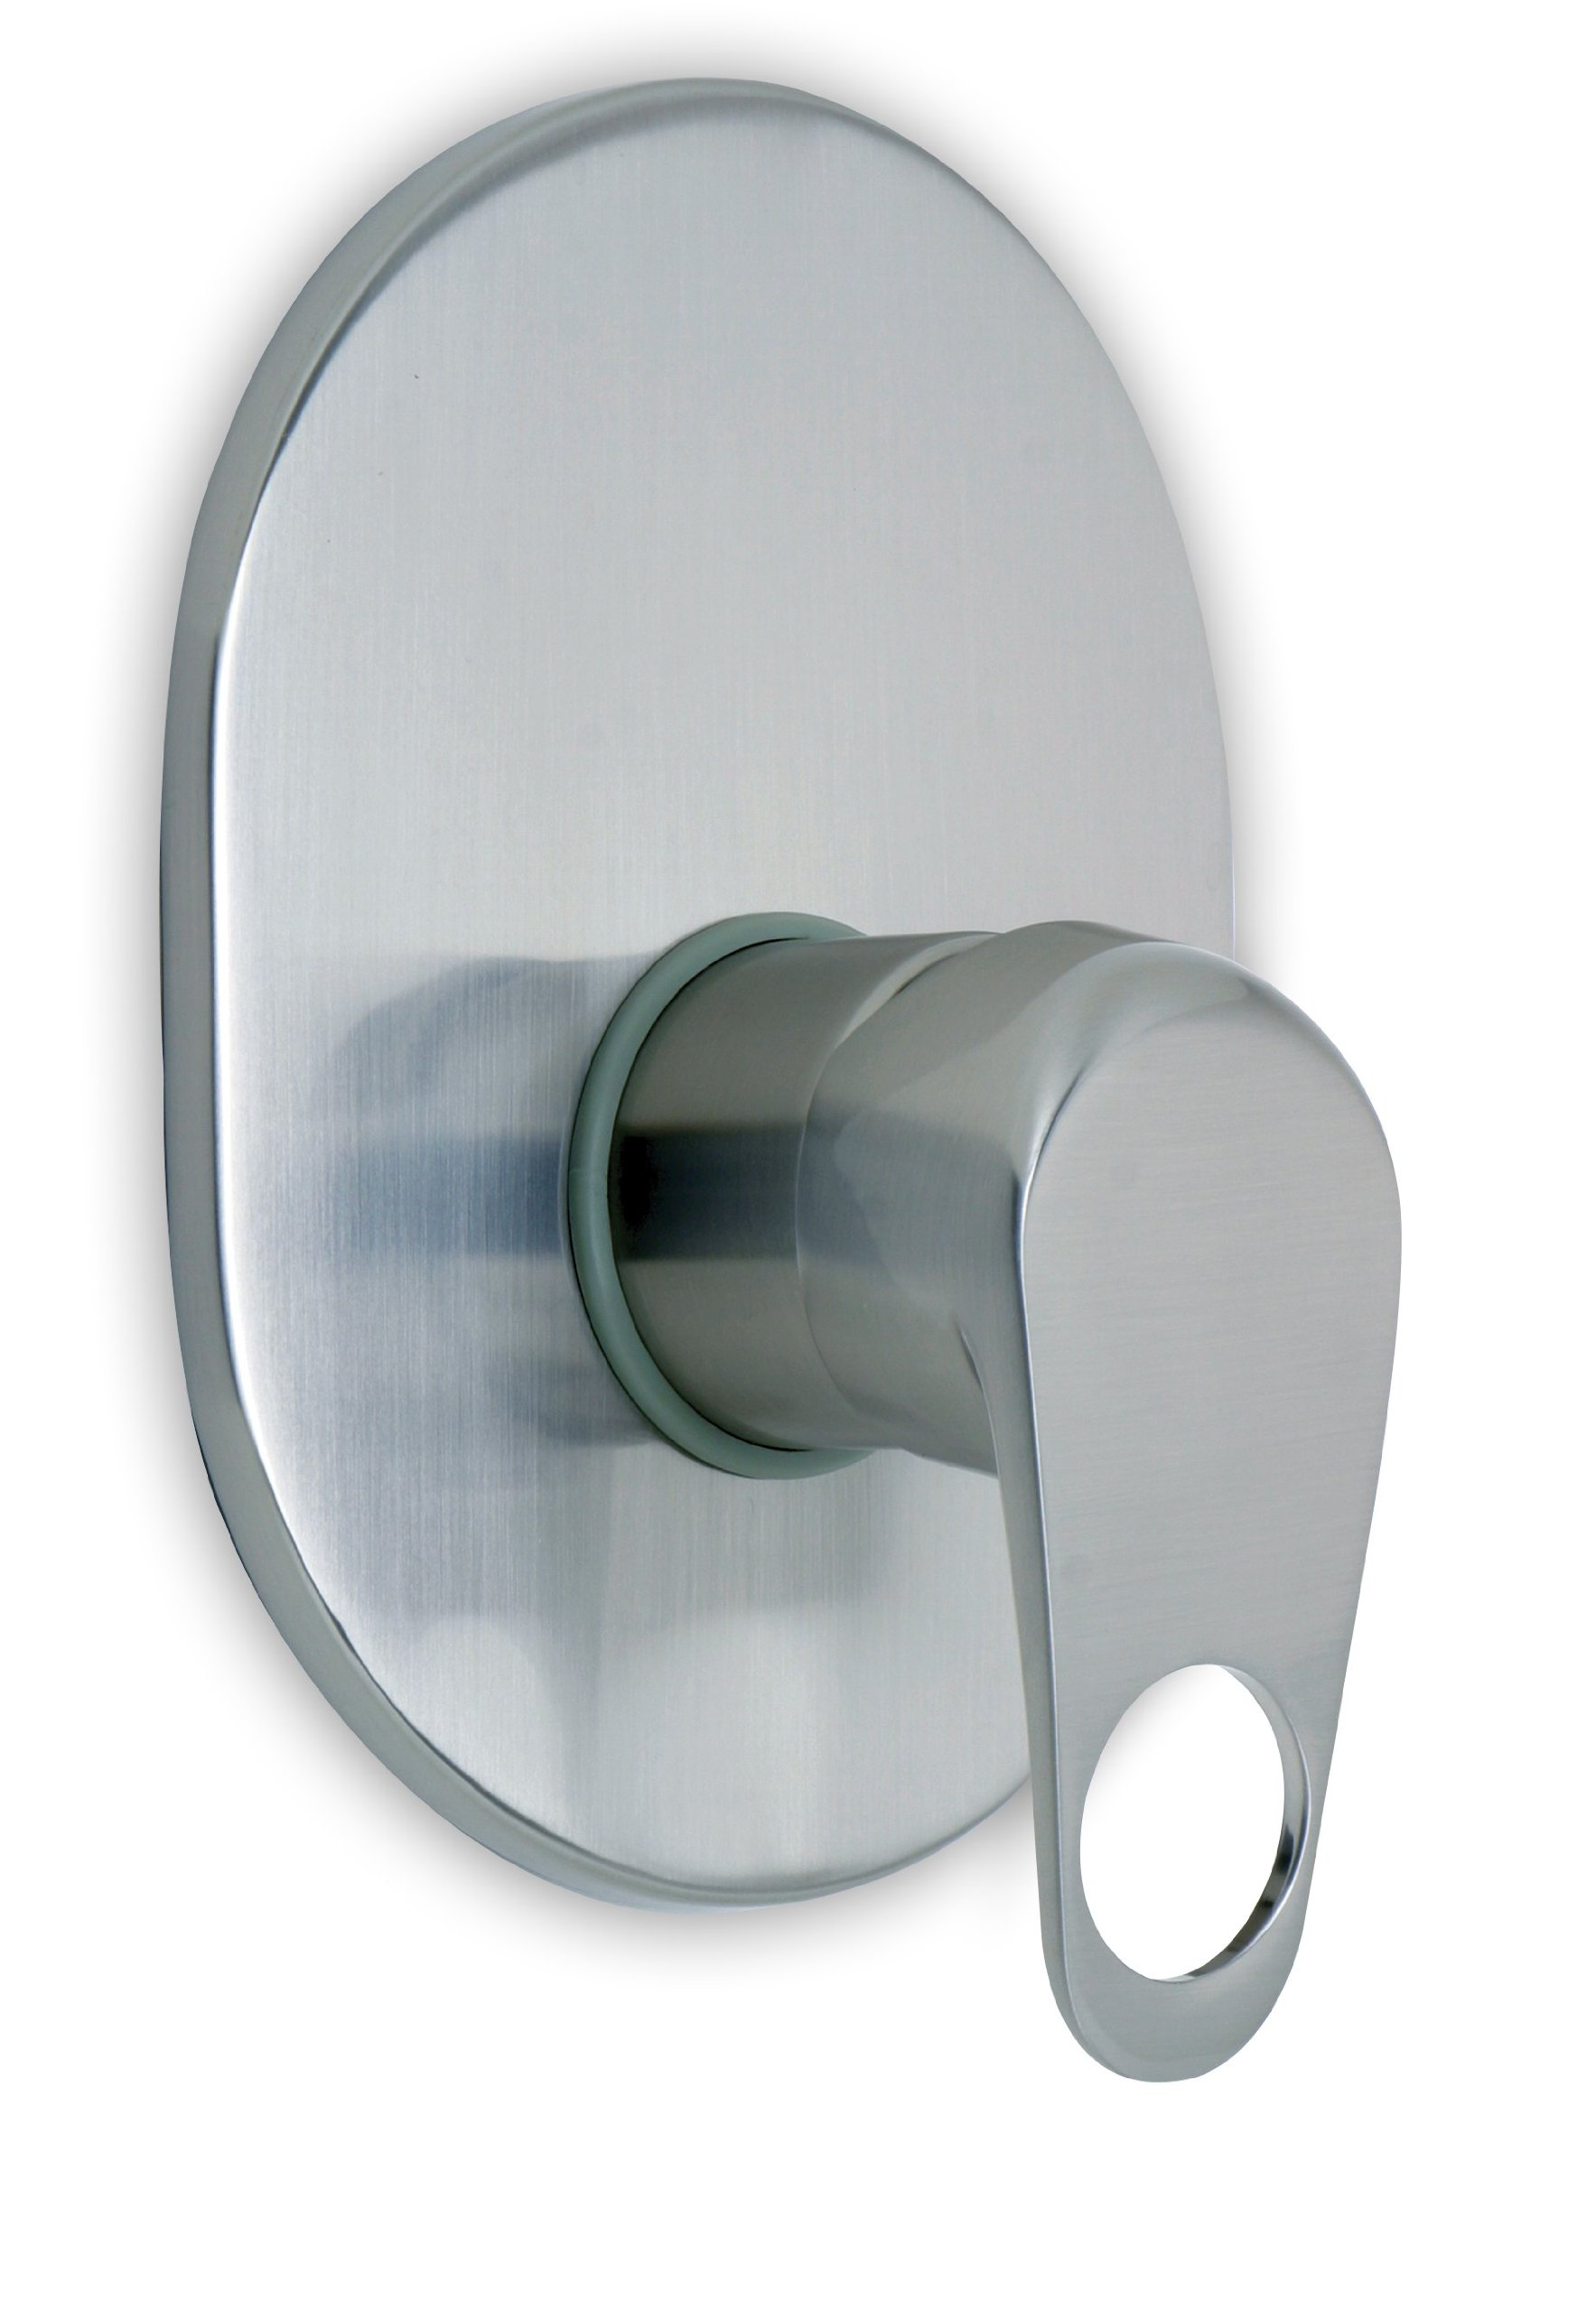 Ambassador Marine Nautilus Collection Shower Mixer, Brushed Nickel